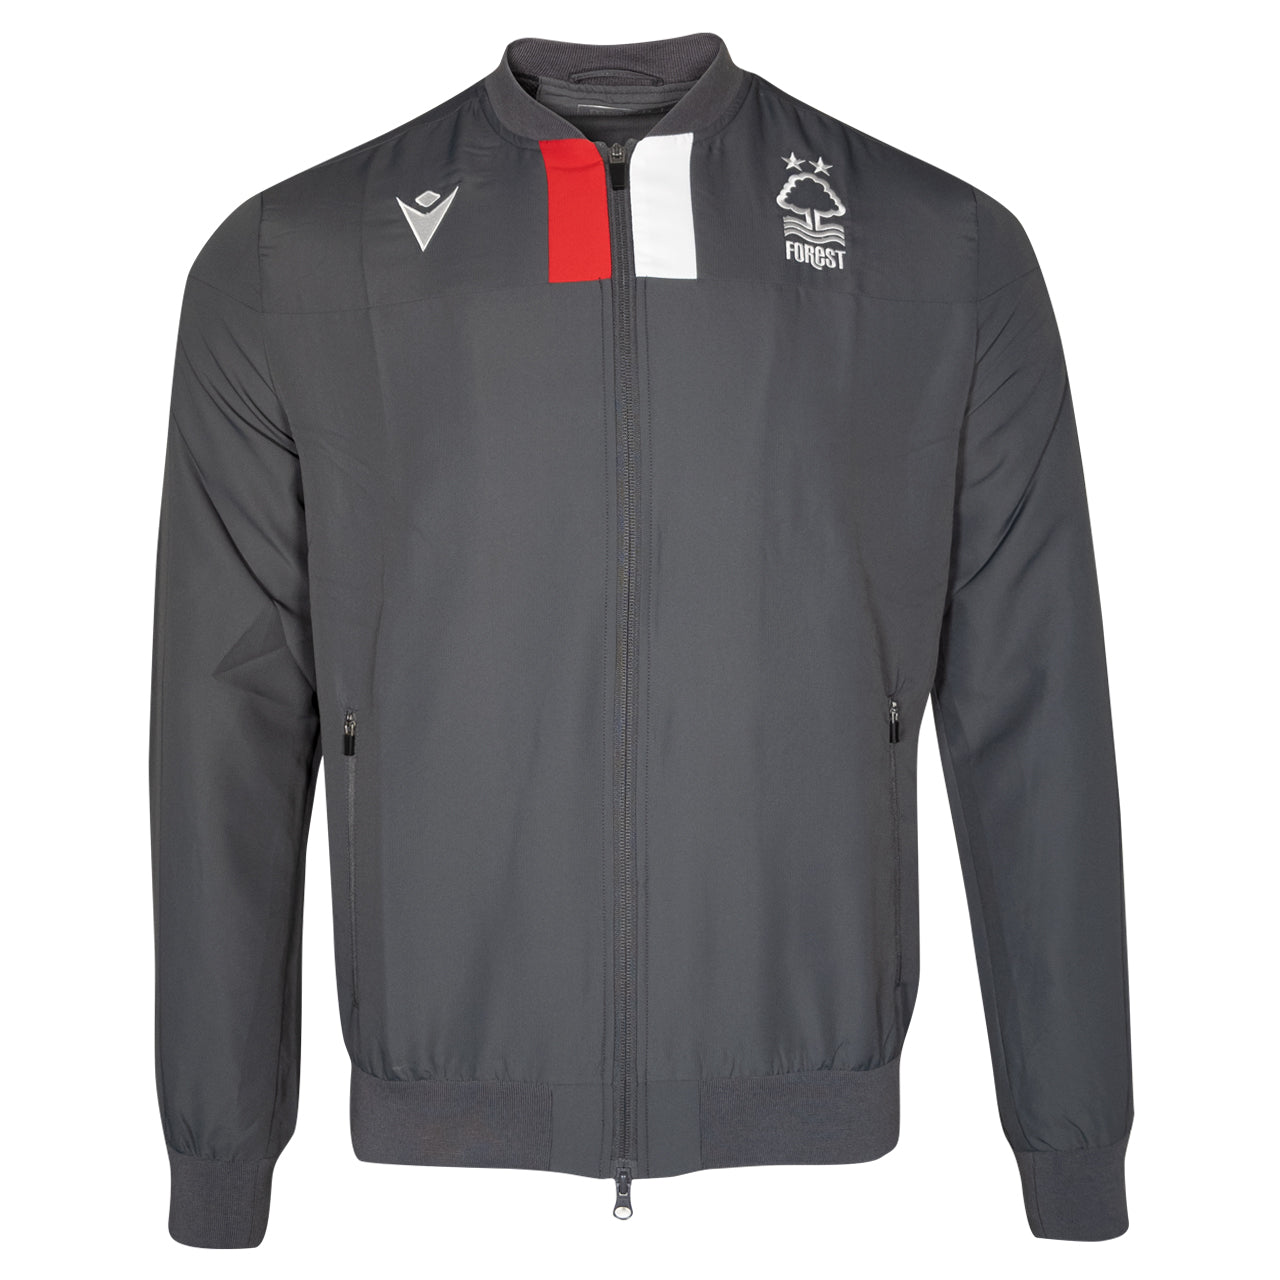 NFFC Junior Grey Staff Full Zip Training Top 19/20